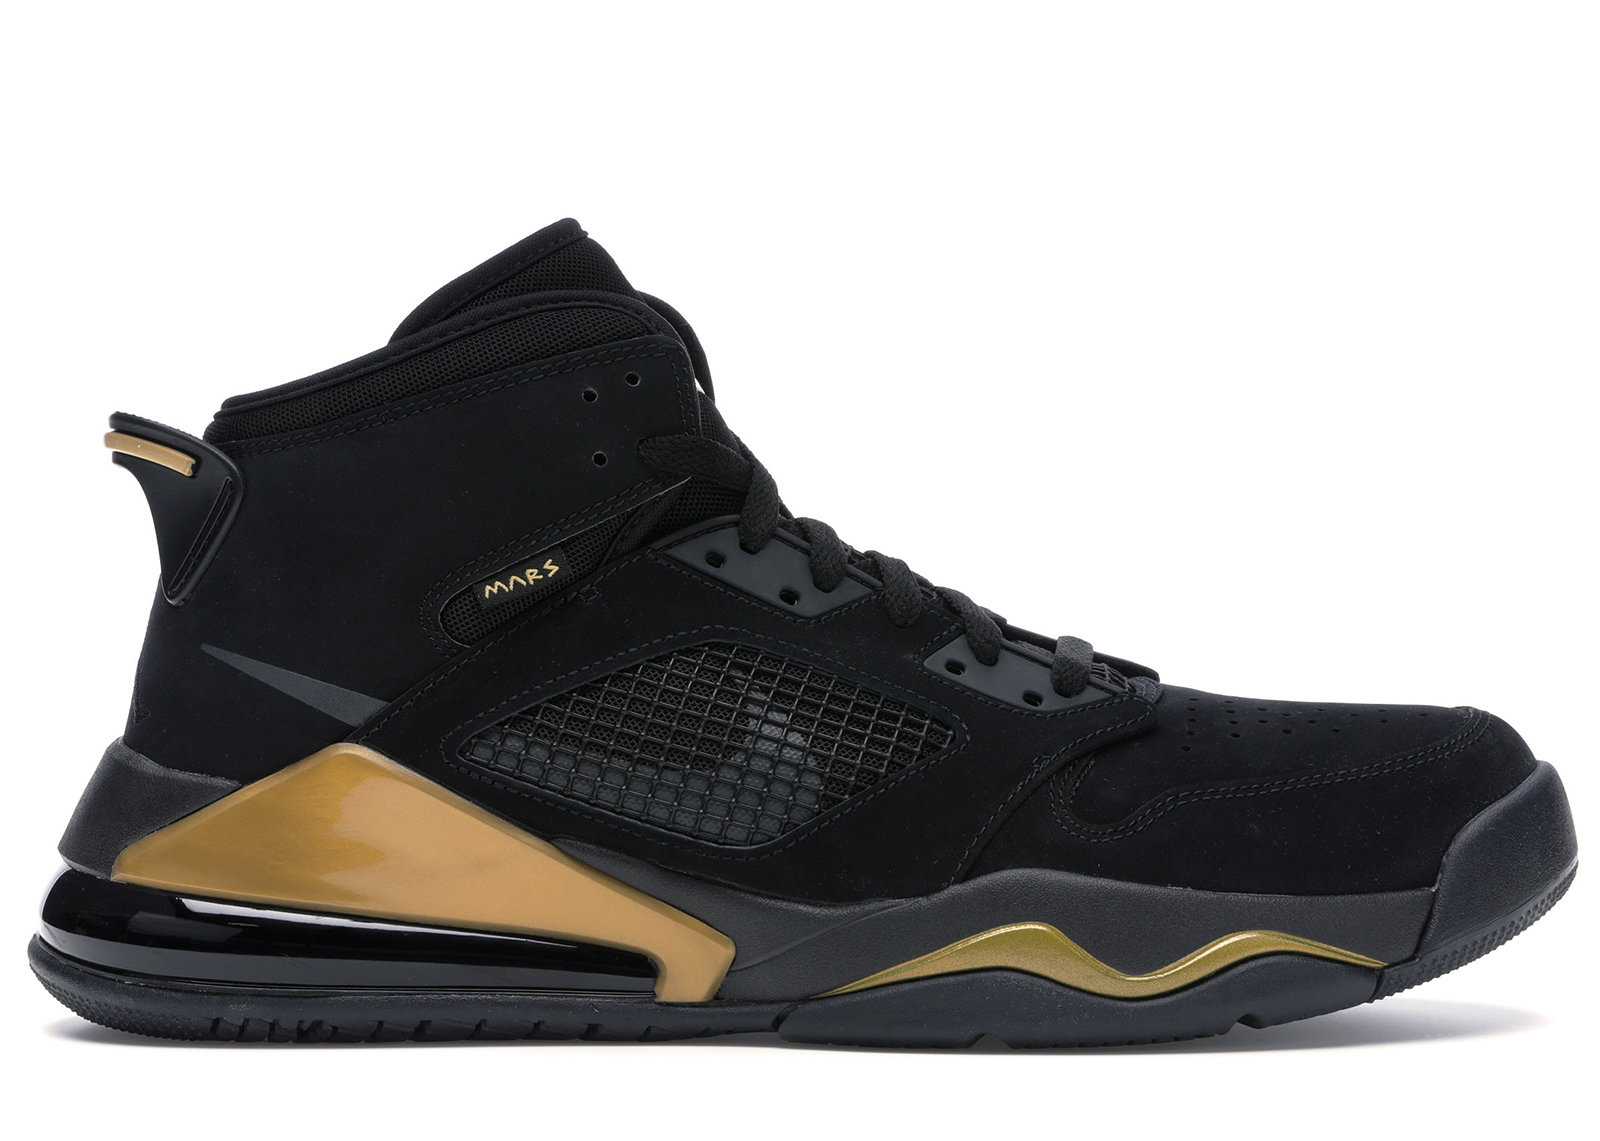 Jordan Mars 270 Black Gold - CD7070-007